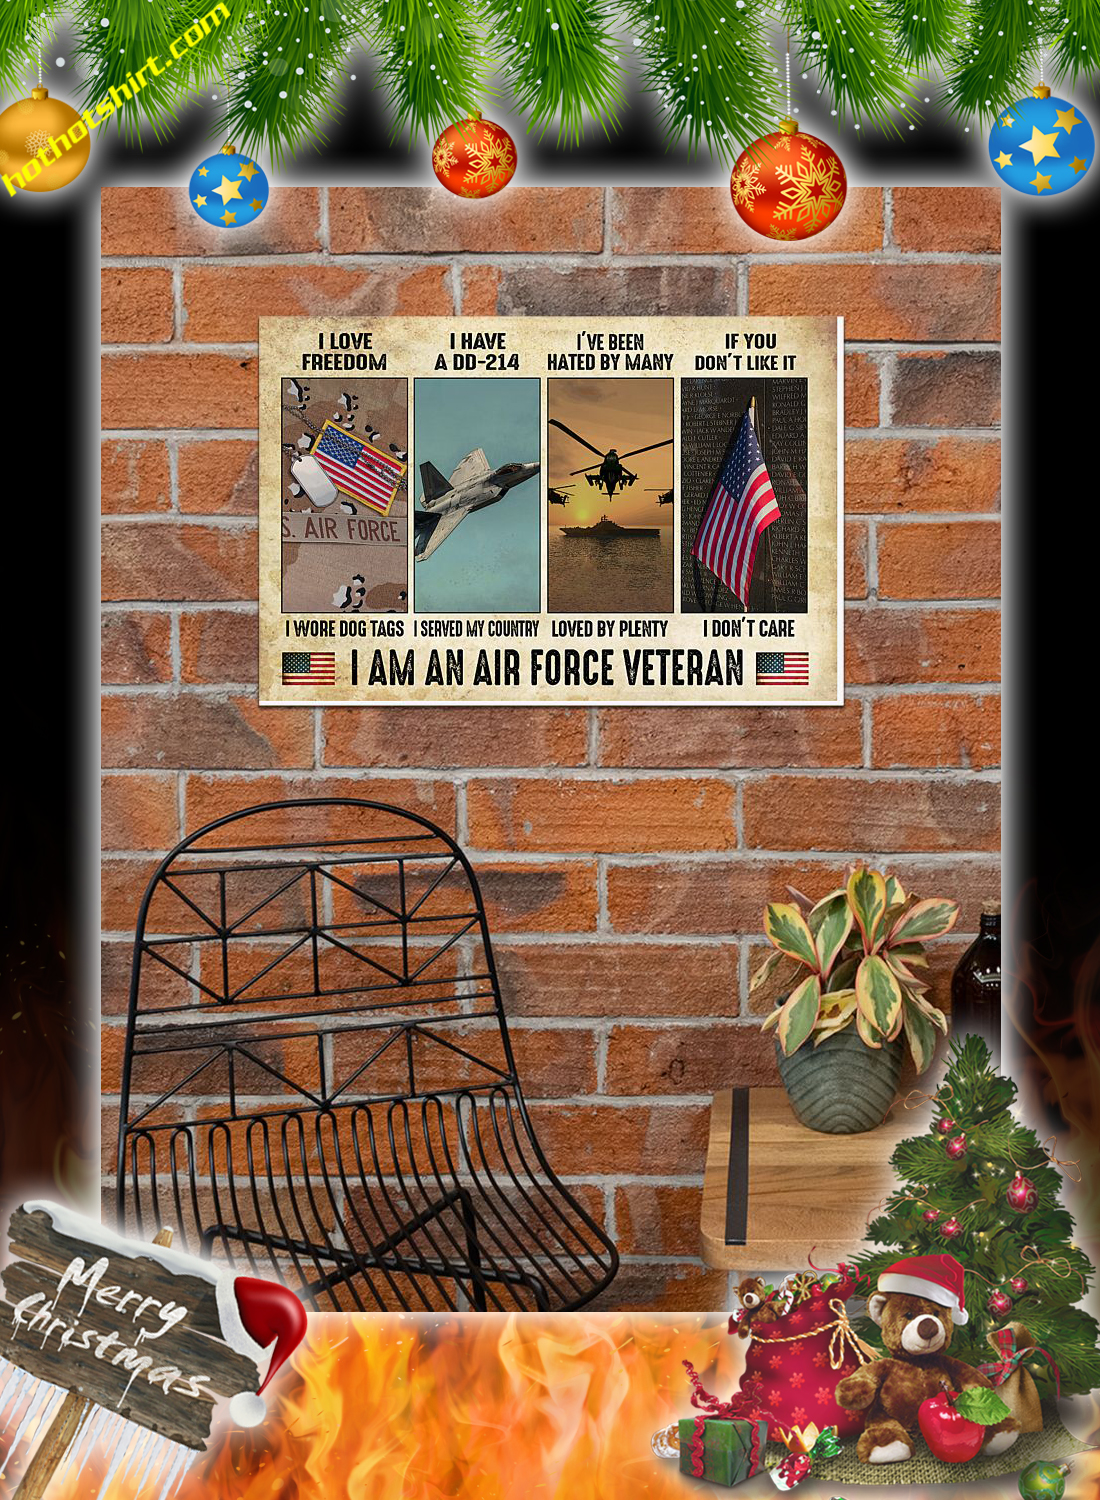 I am an air force veteran poster 2